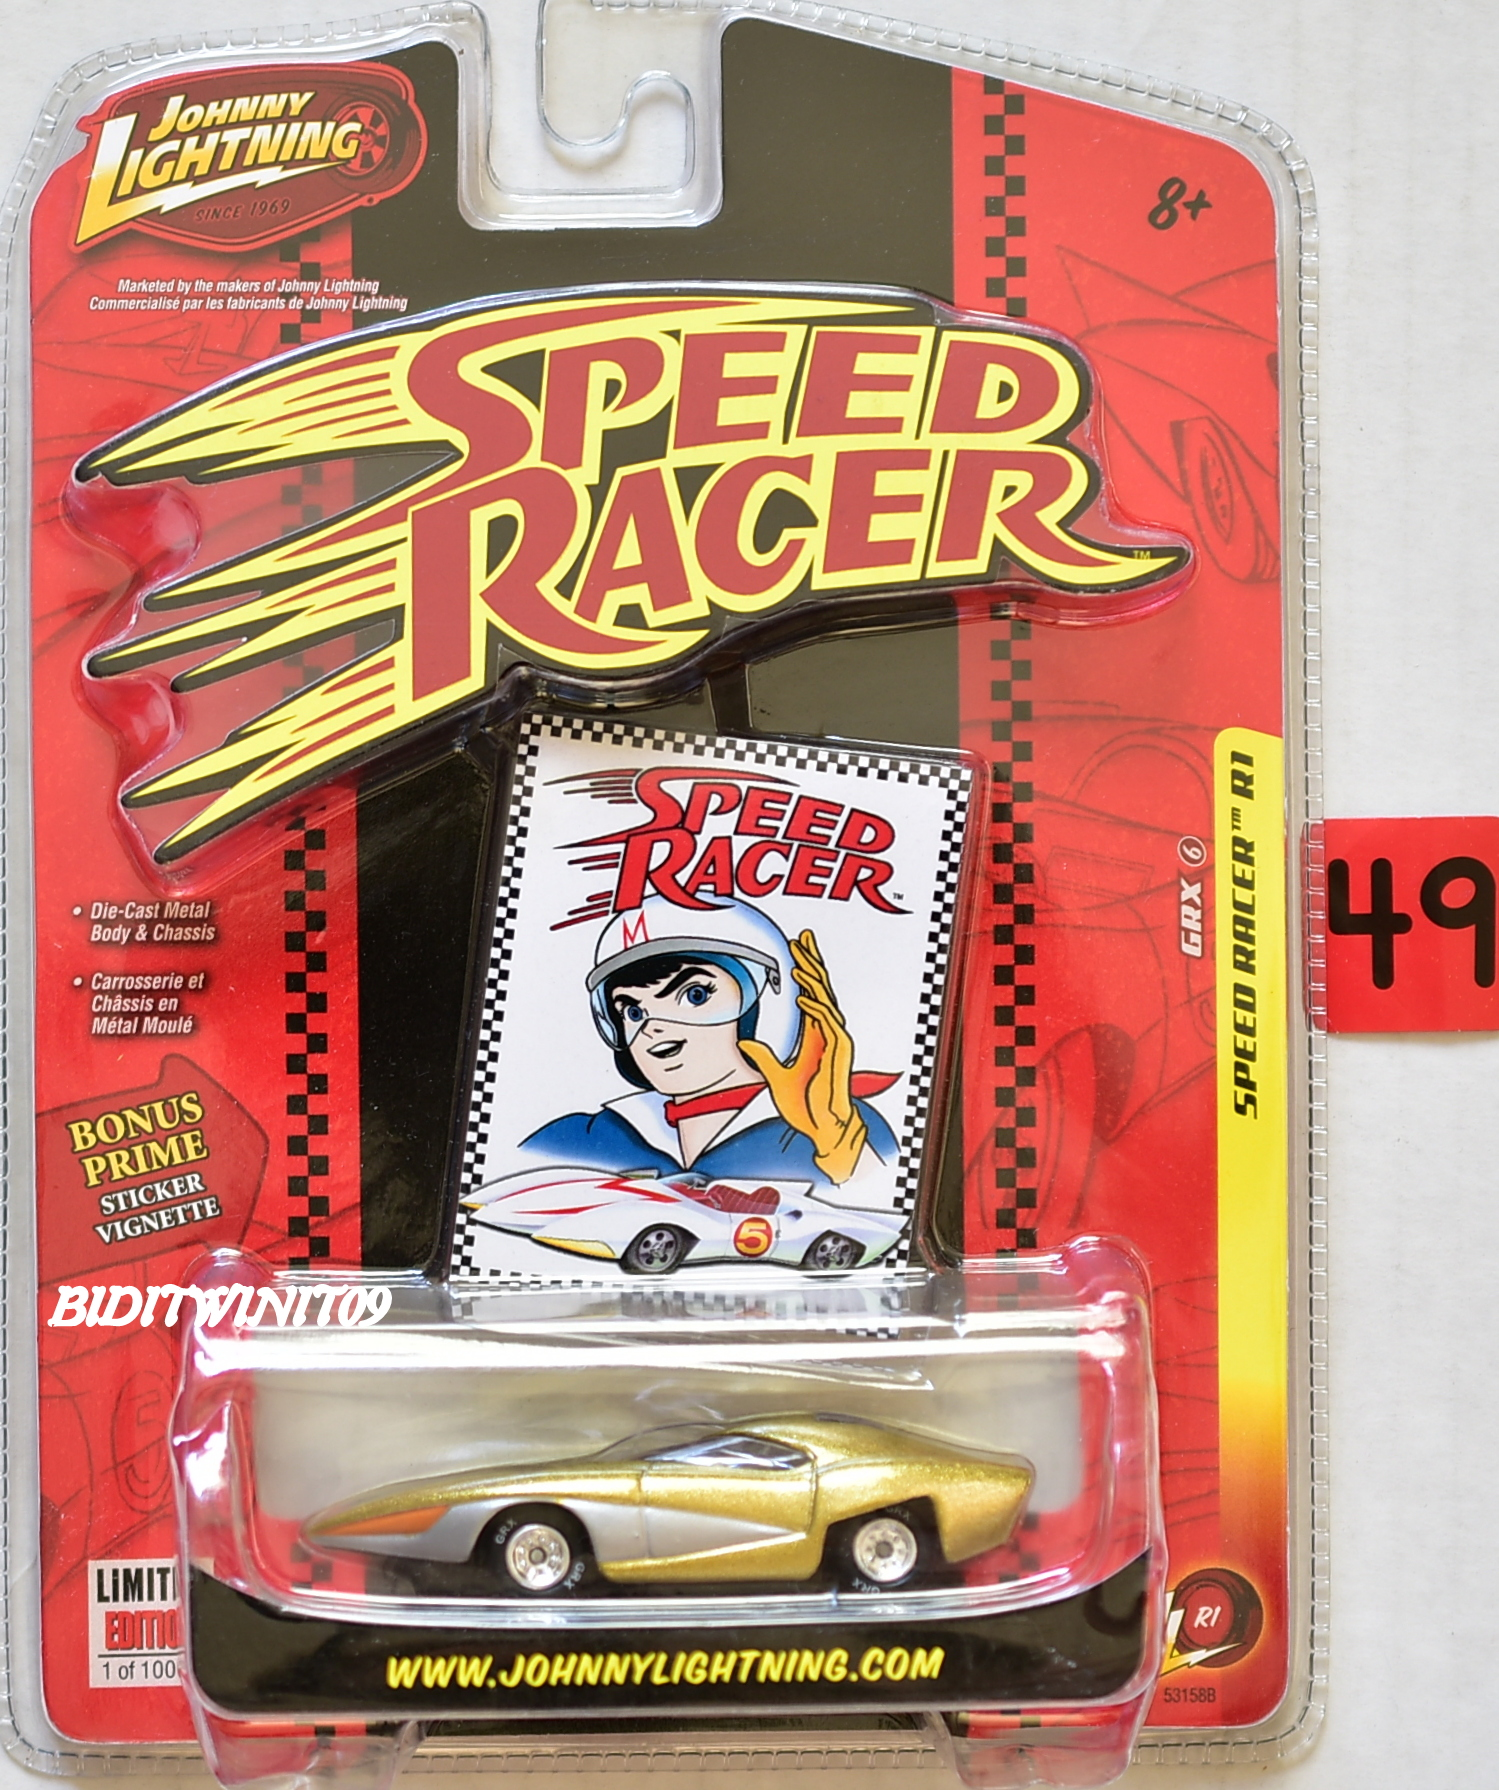 JOHNNY LIGHTNING SPEED RACER R1 GRX #6 E+